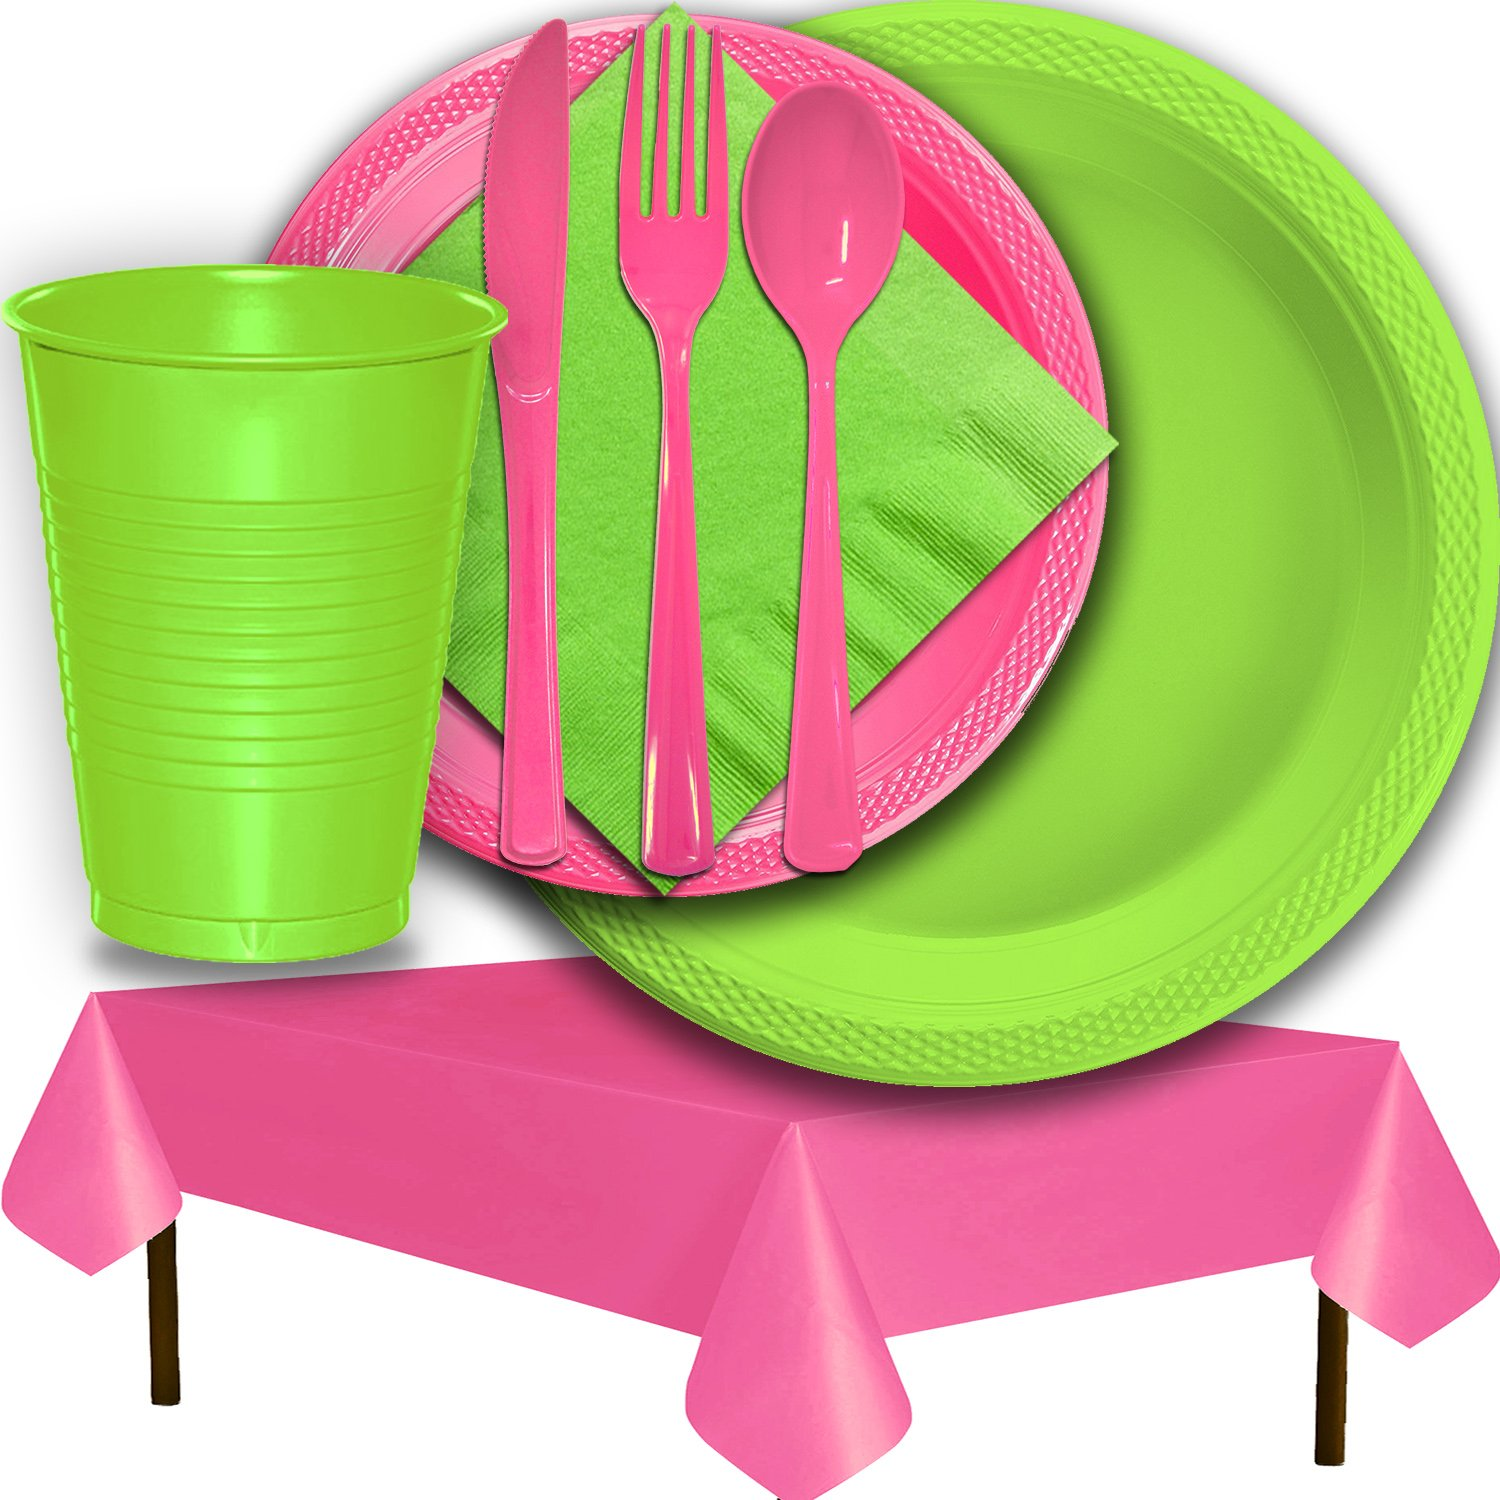 Plastic Party Supplies for 50 Guests - Lime Green and Hot Pink - Dinner Plates, Dessert Plates, Cups, Lunch Napkins, Cutlery, and Tablecloths - Premium Quality Tableware Set